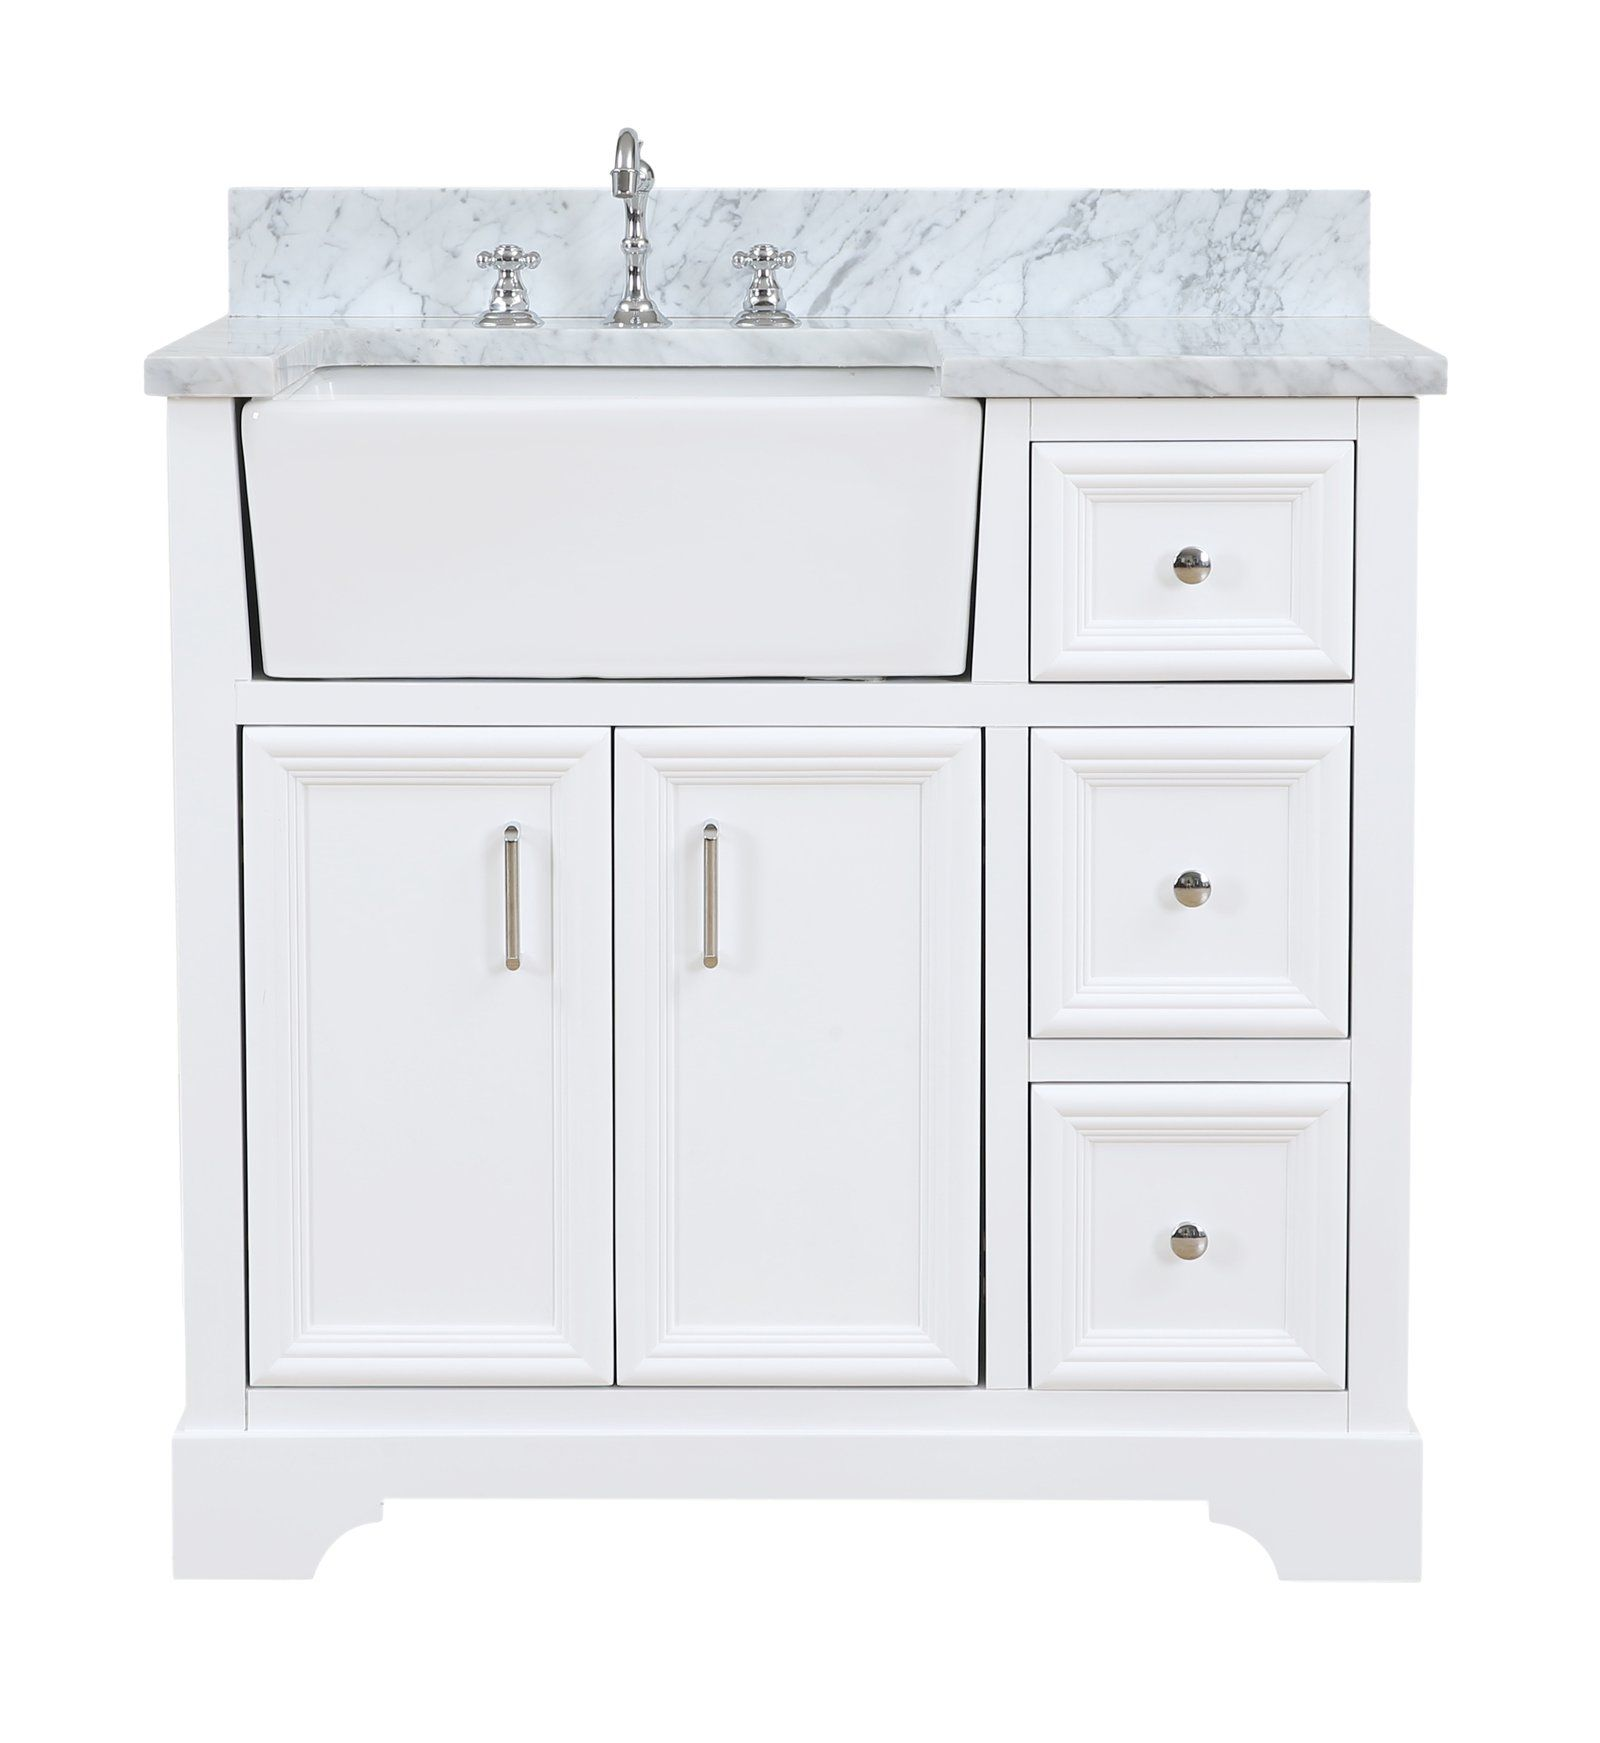 Zelda 36inch Farmhouse Vanity with Carrara Marble Top in